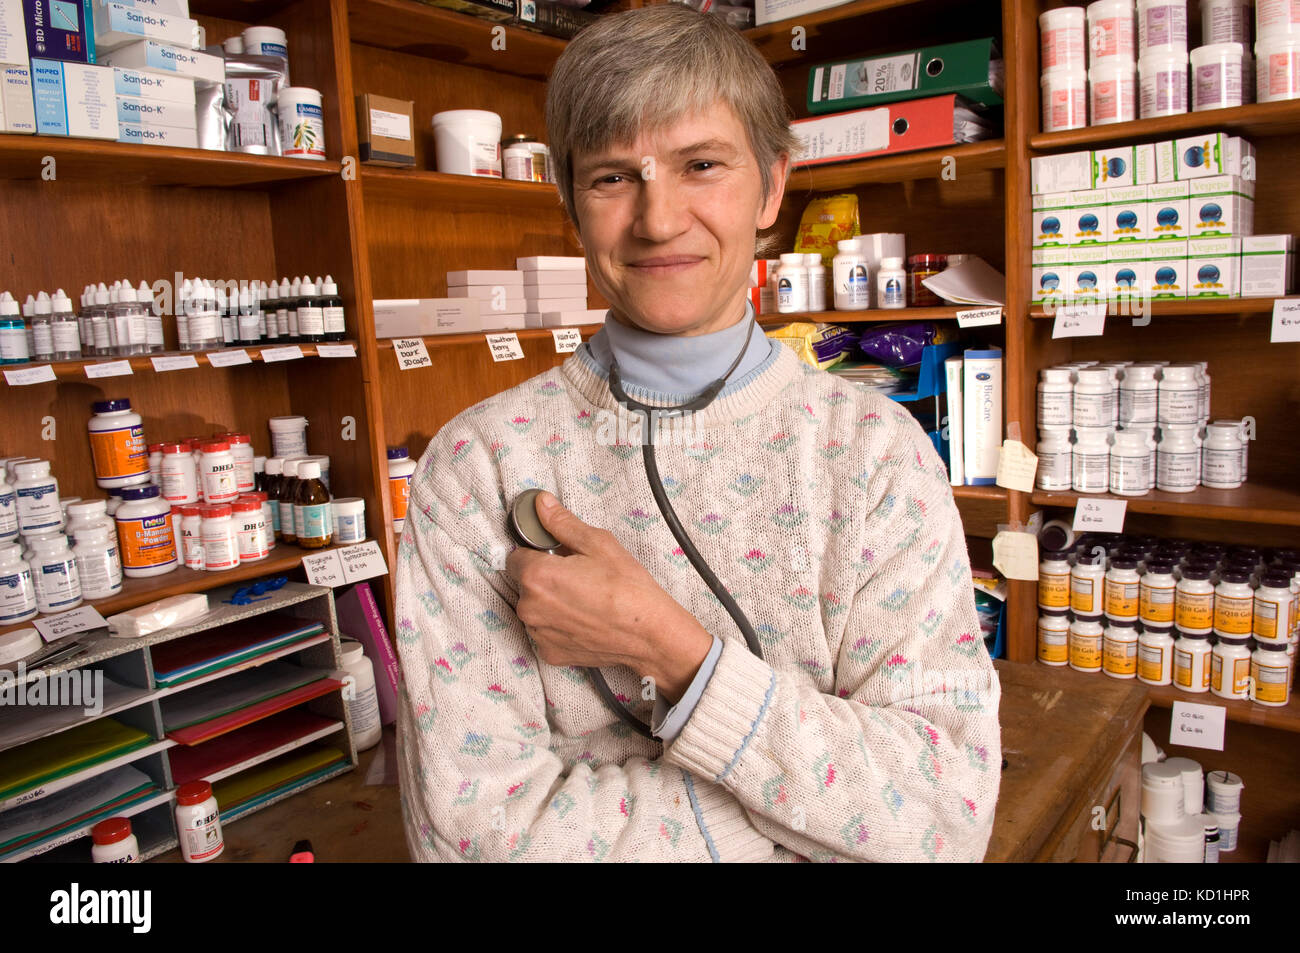 Alternative therapy  practitioner, Dr.Sarah Myhill at her home/practice in Knighton, Powys, Mid Wales. - Stock Image